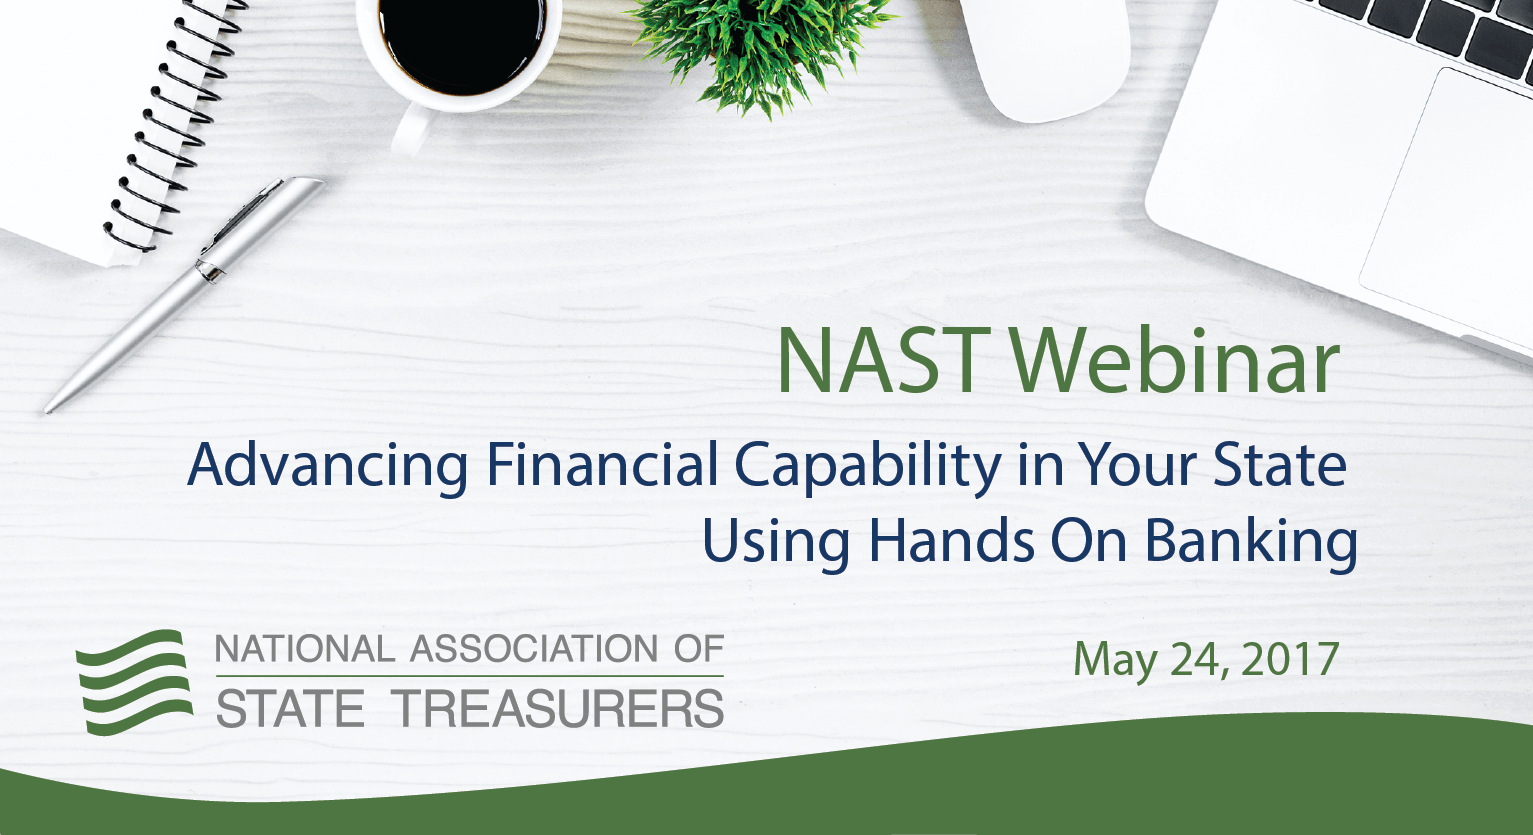 Advancing Financial Capability in Your State Using Hands On Banking